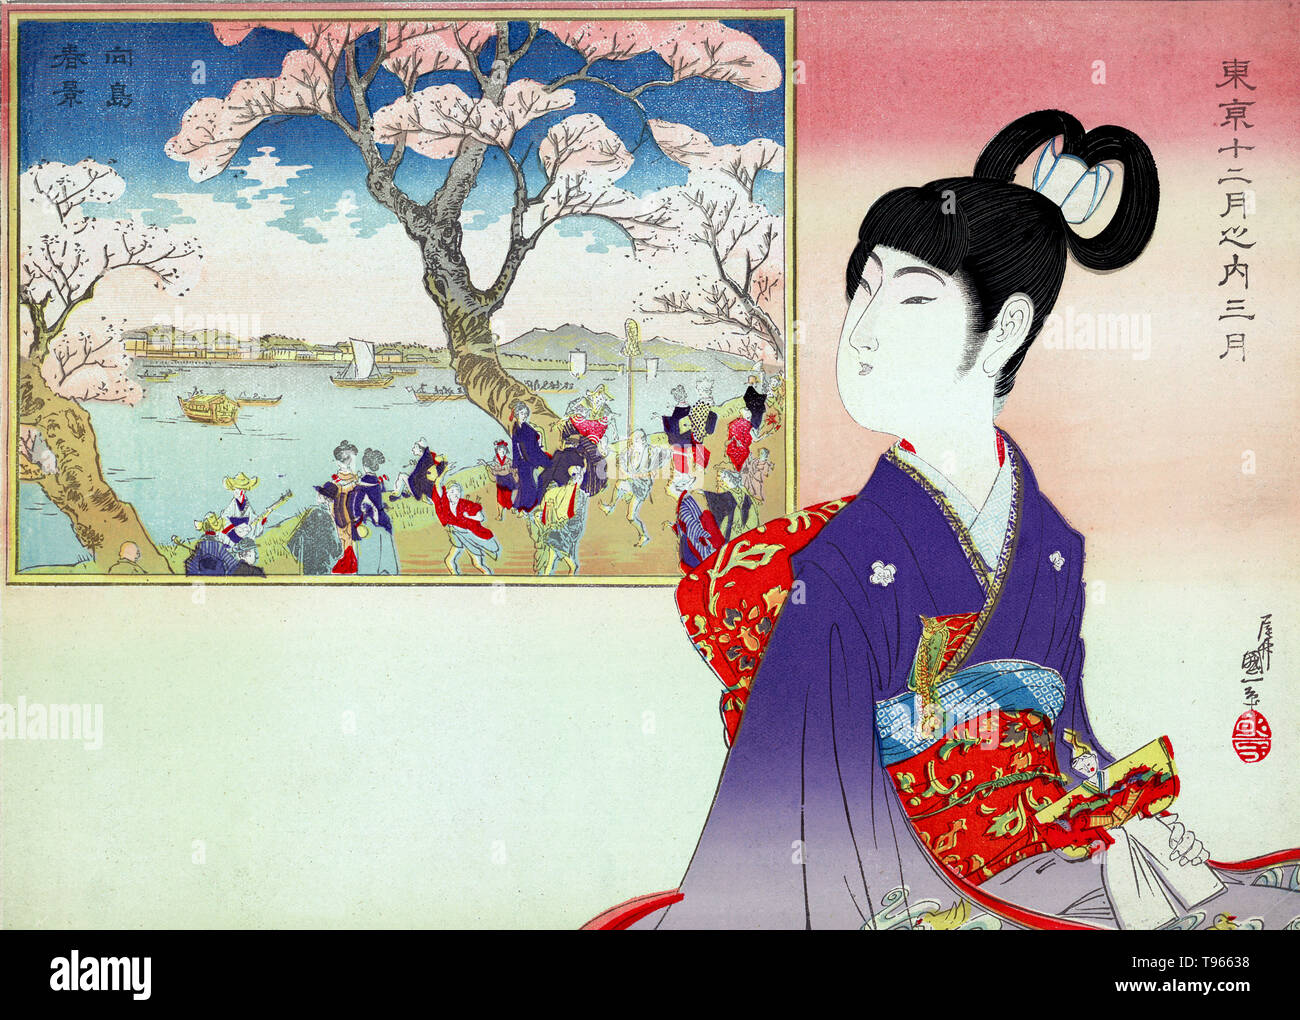 The small landscape depicted celebrates Mukojima situated on the east bank of the Sumida River. This is still a famous destination for viewing the cherry blossom trees that were first planted there by Shogun Tokugawa Yoshimune (1684-1751). The fashionable young girl in the foreground is holding what is likely an emperor doll associated with the March 3rd Hinamatsuri or Girls Day festival. Kunikazu was a student of Utagawa Kunimasa and the oldest of three artist brothers. Prints of this type, called kuchi-e (mouth pictures), were made as frontispiece illustrations for novels and literary journa - Stock Image